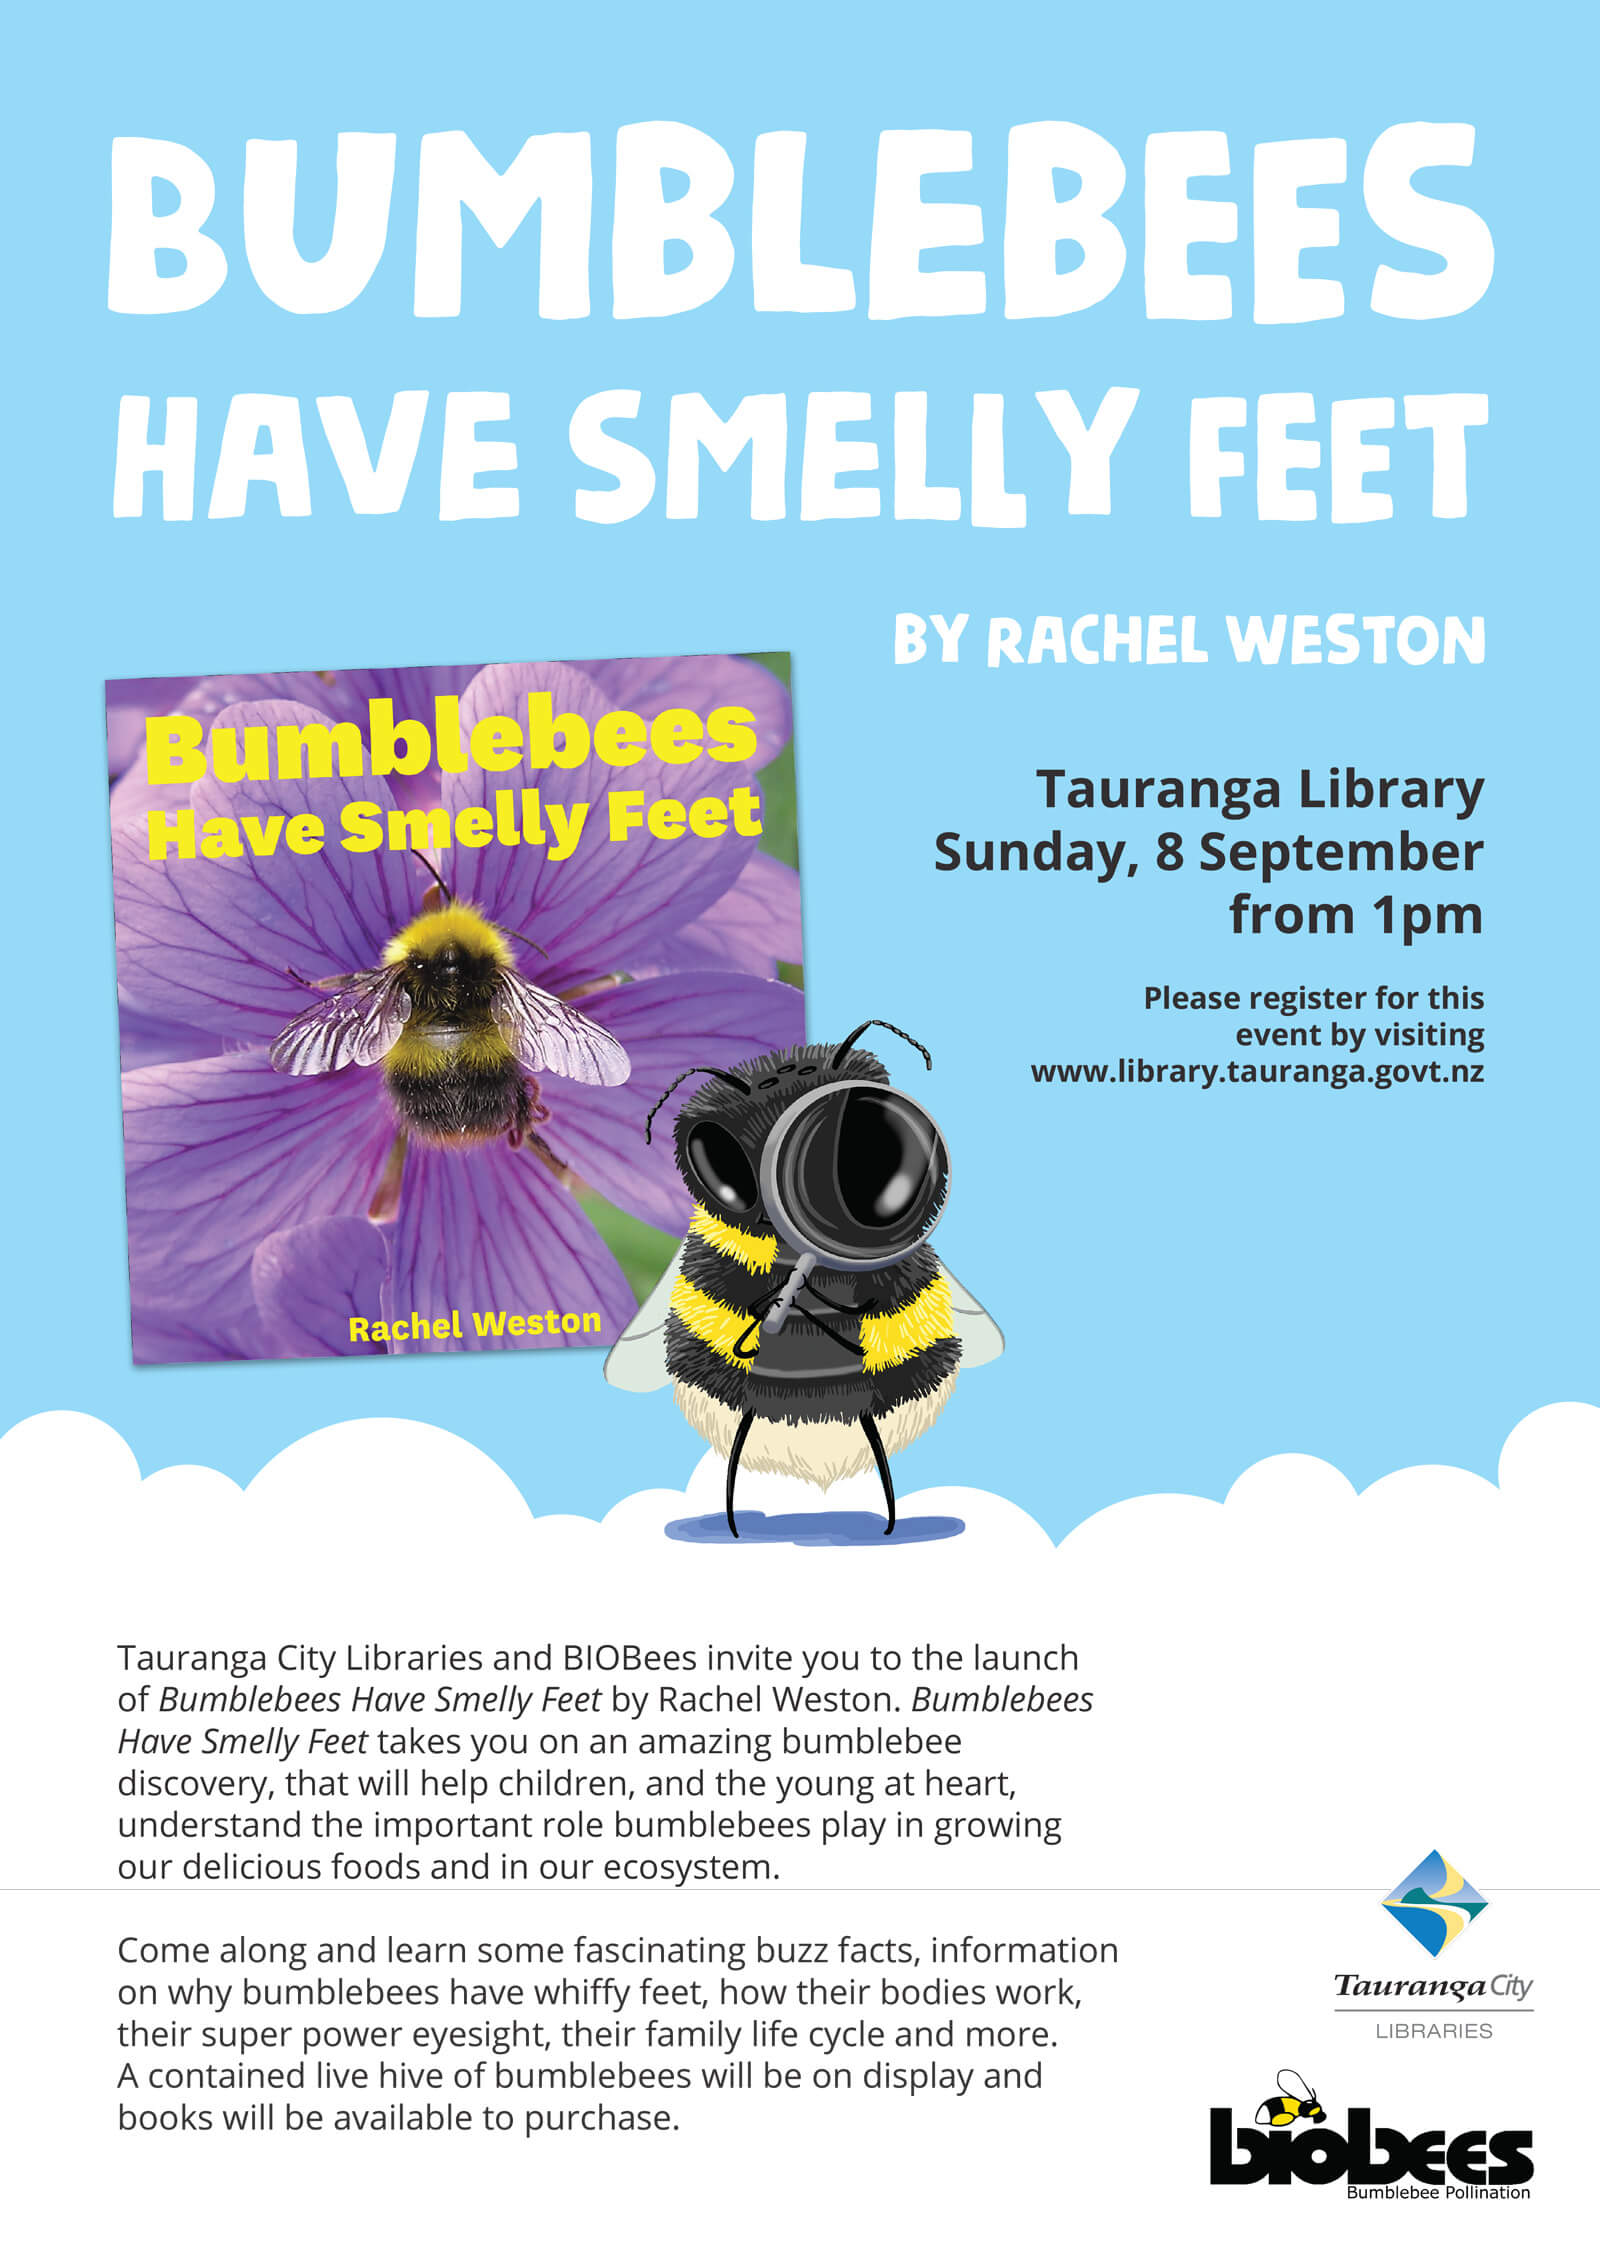 bumblebees have smelly feet book launch poster